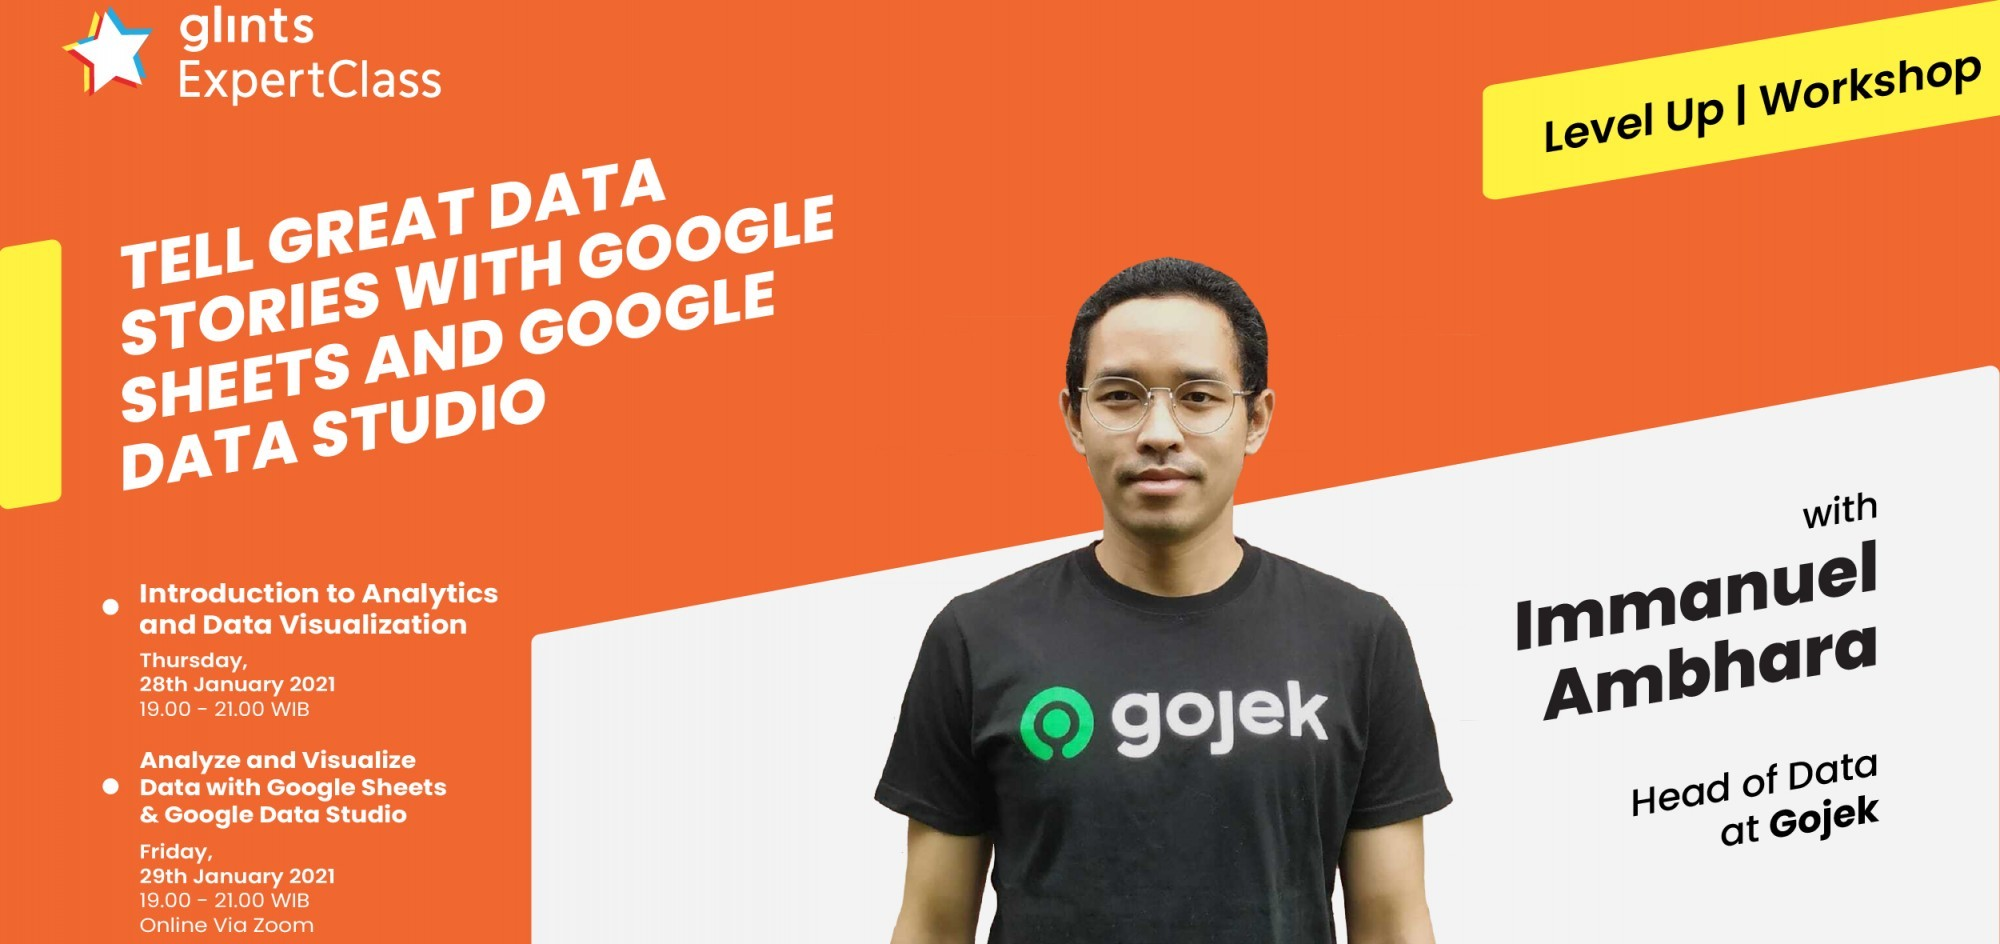 Data Analytics Workshop: Tell Great Data Stories With Google Sheets and Google Data Studio